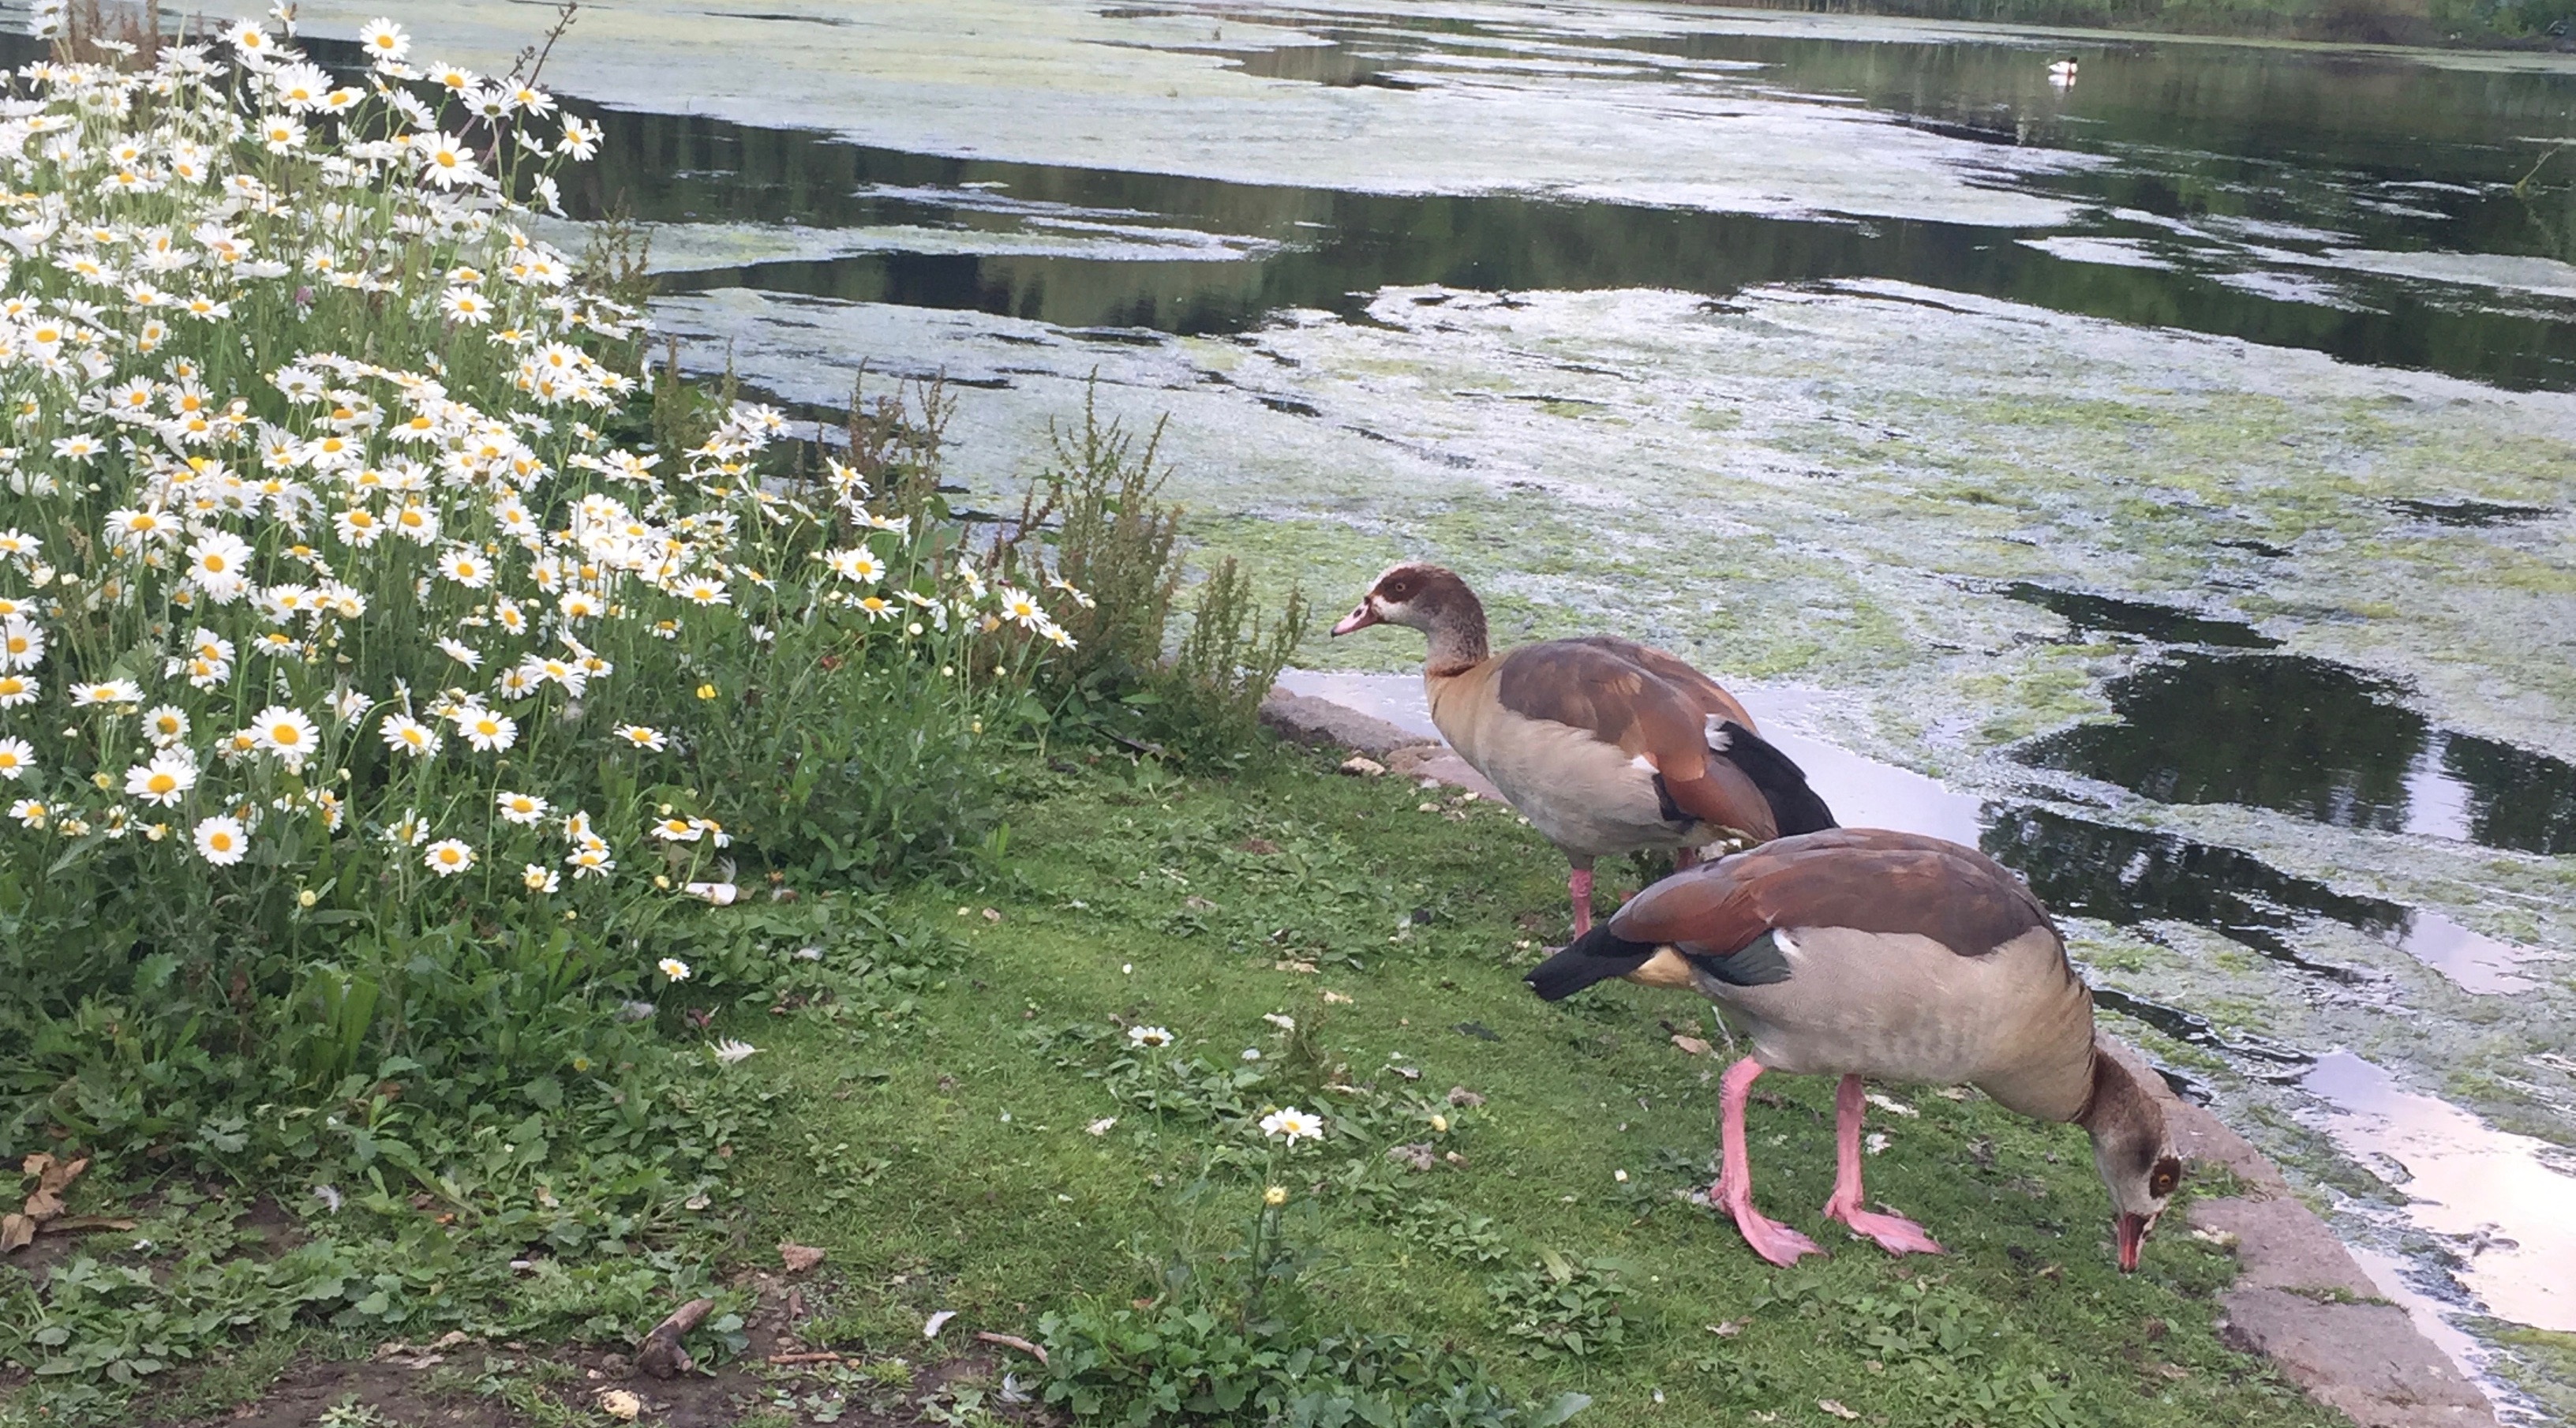 Two Egyptian geese eating grass near a patch of daisies